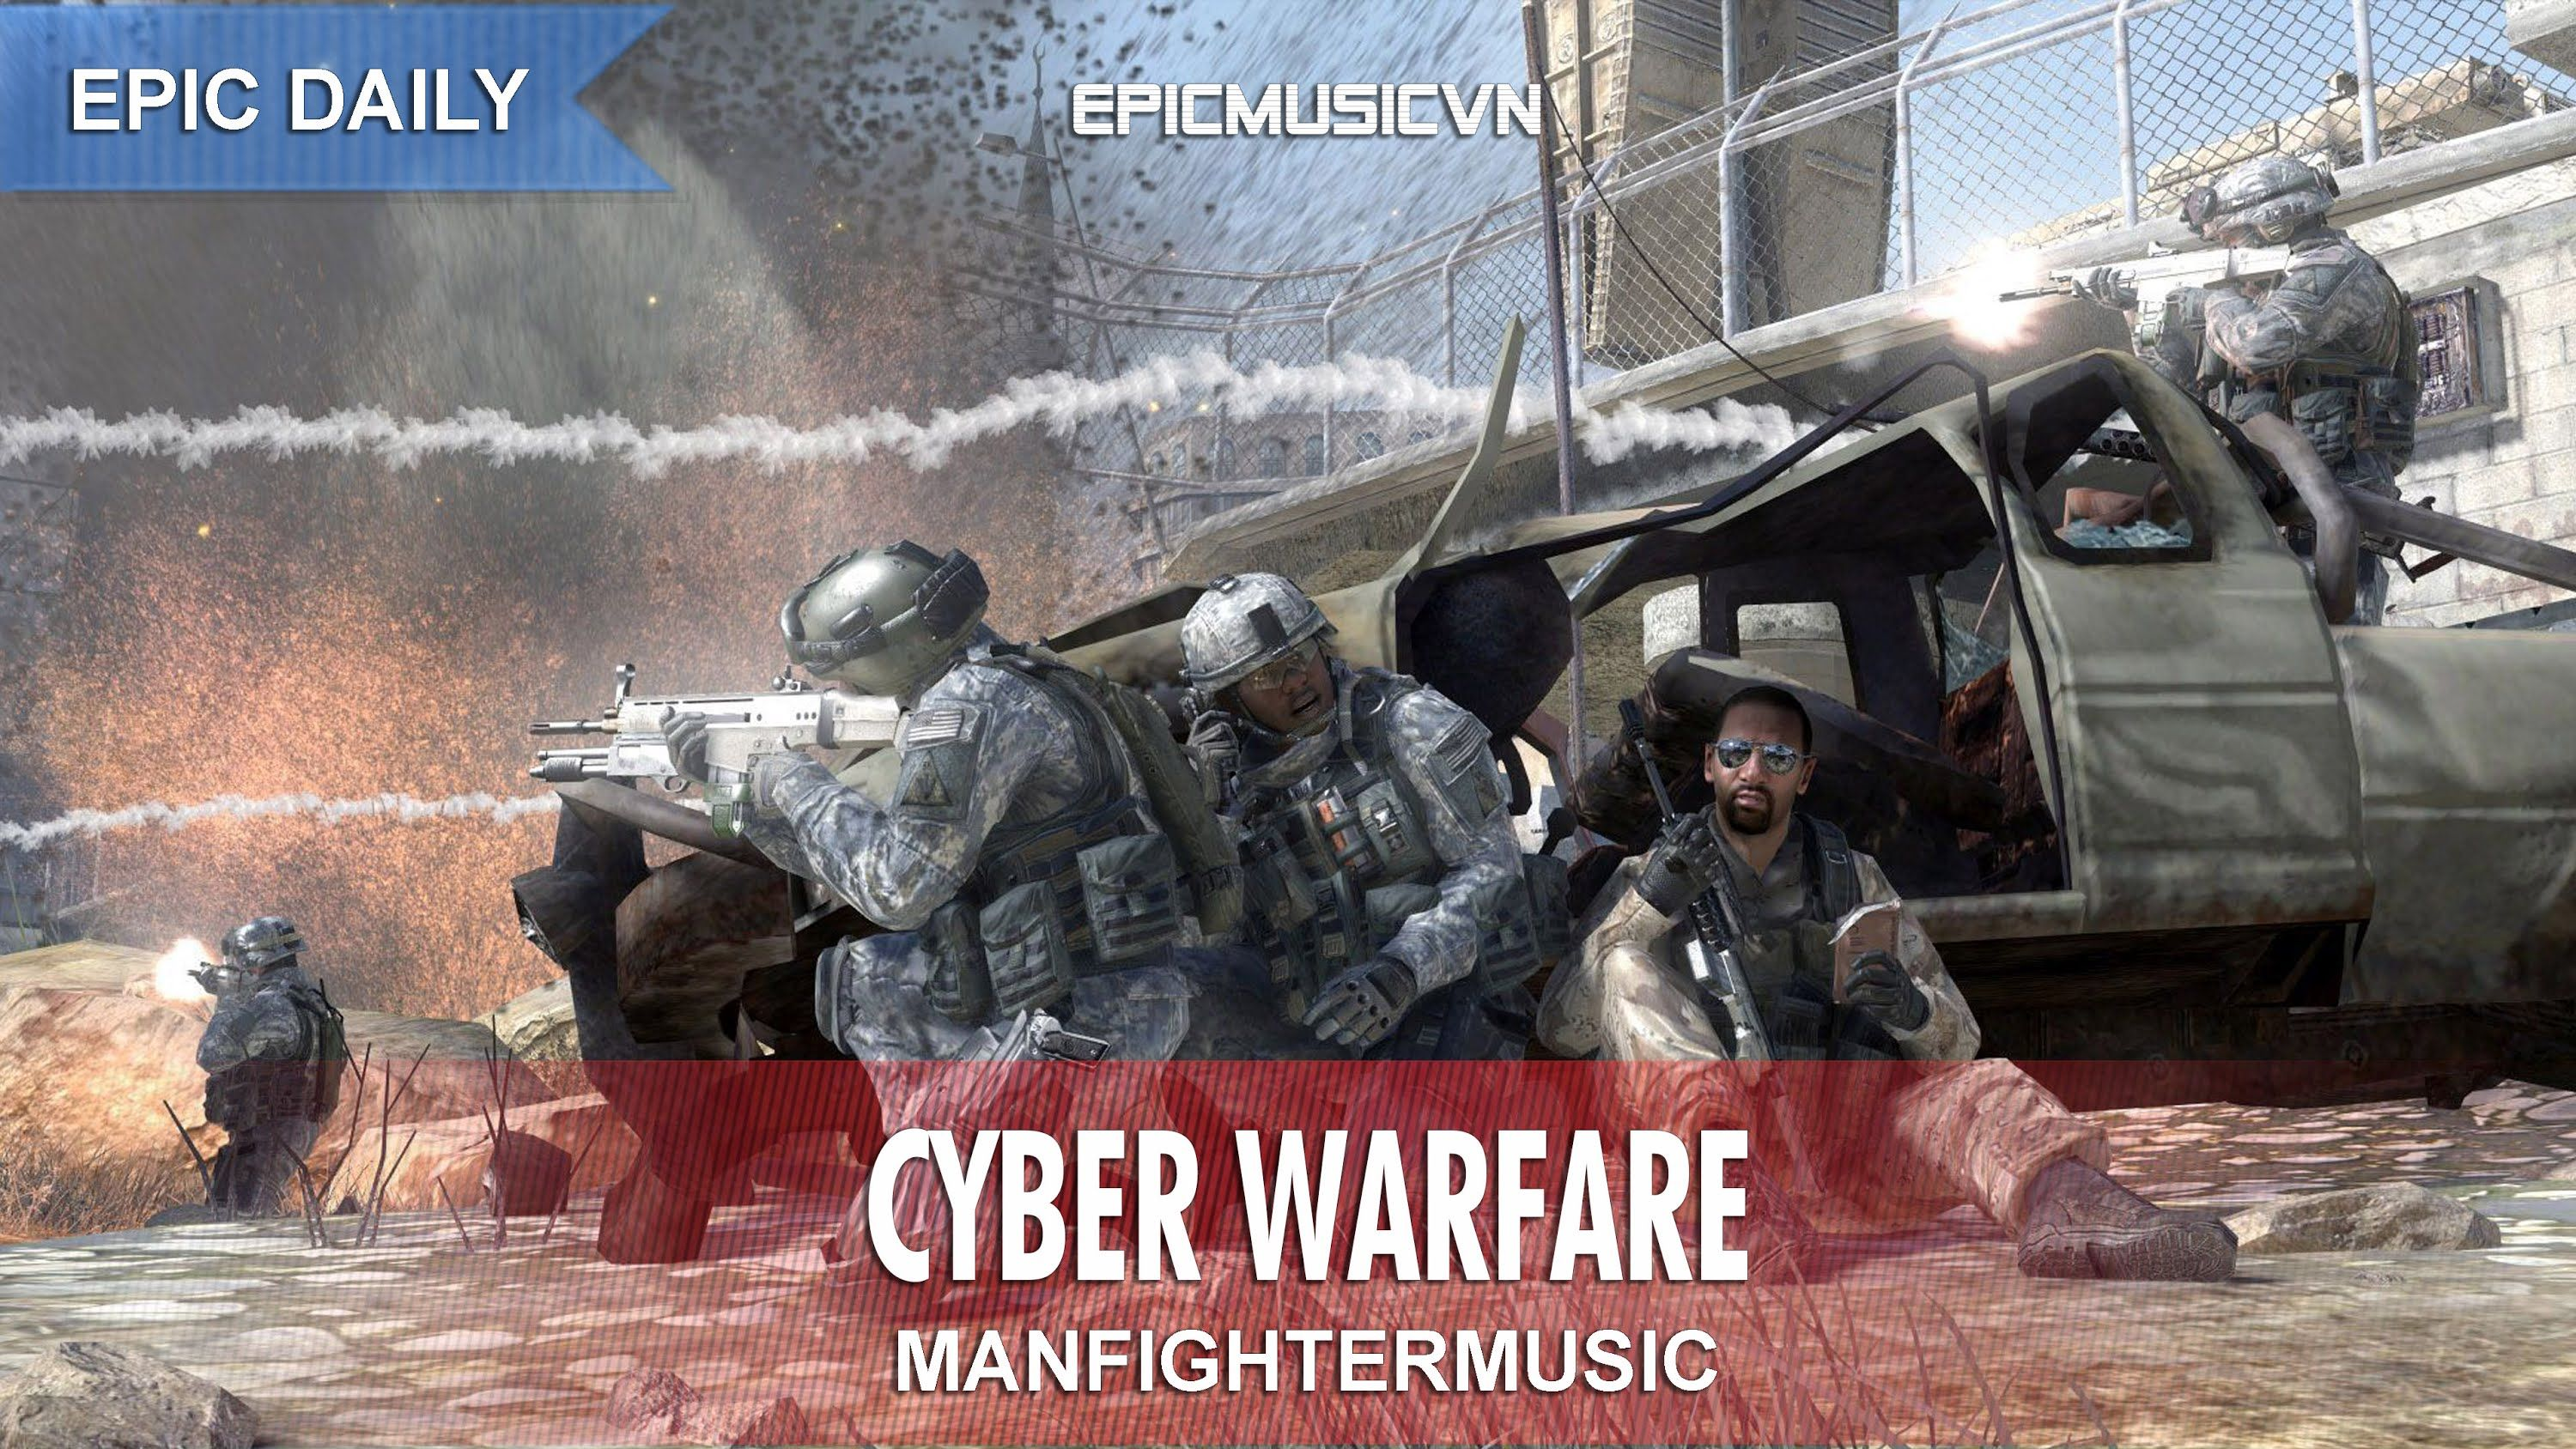 Epic Daily] MFM (ManFighterMusic) - Cyber Warfare (Post-Apocalyptic